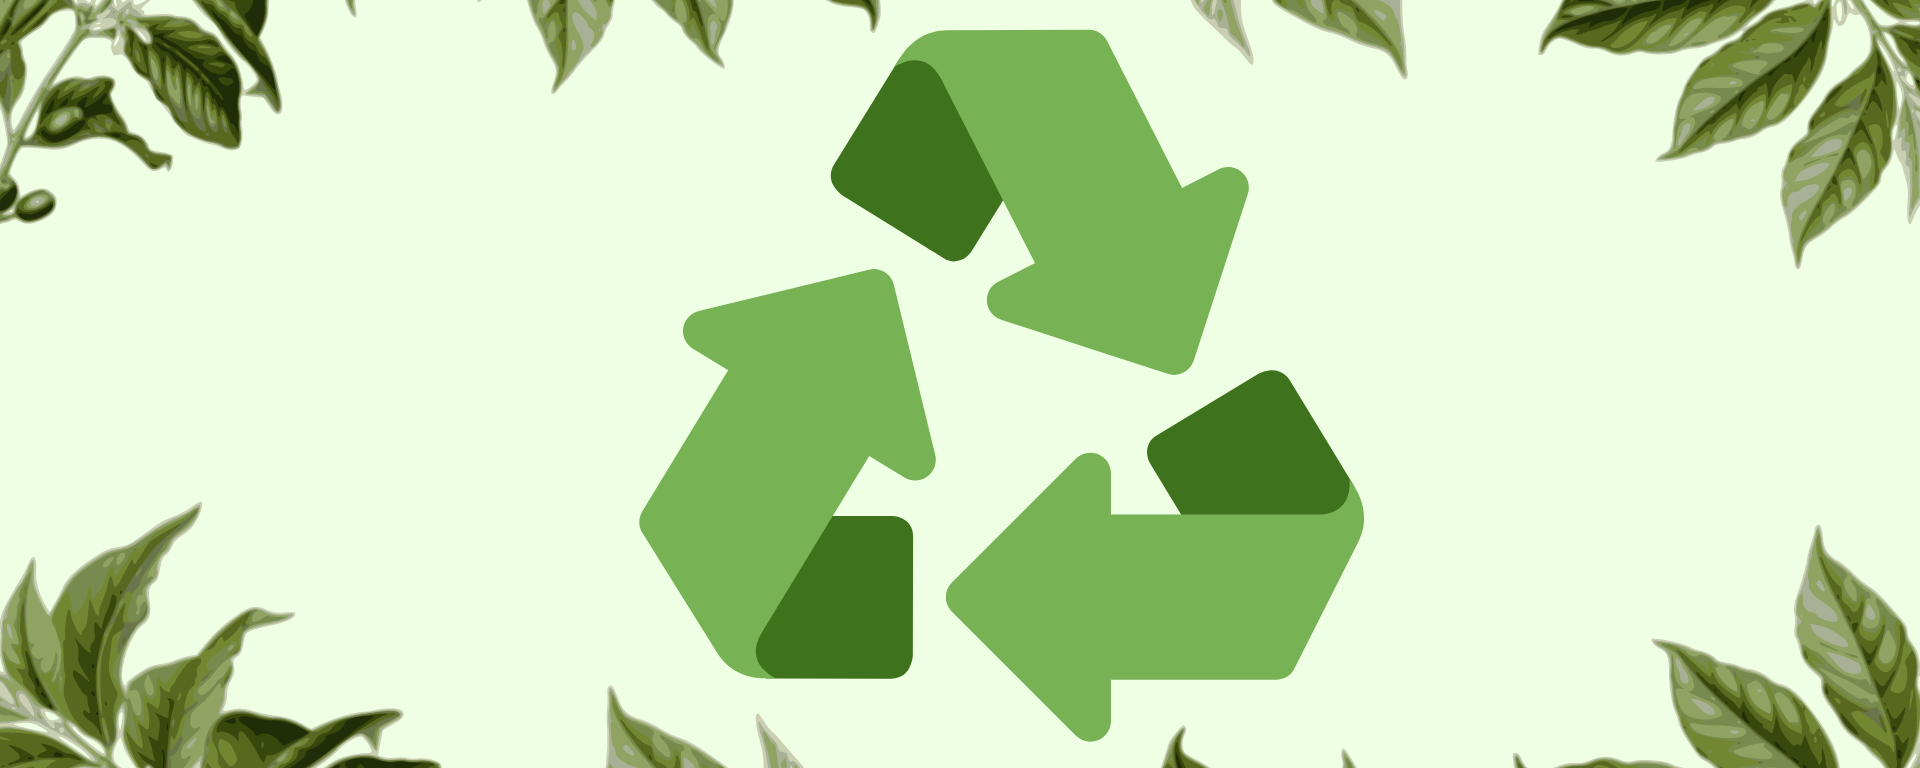 Green background with drawing of recycle symbol